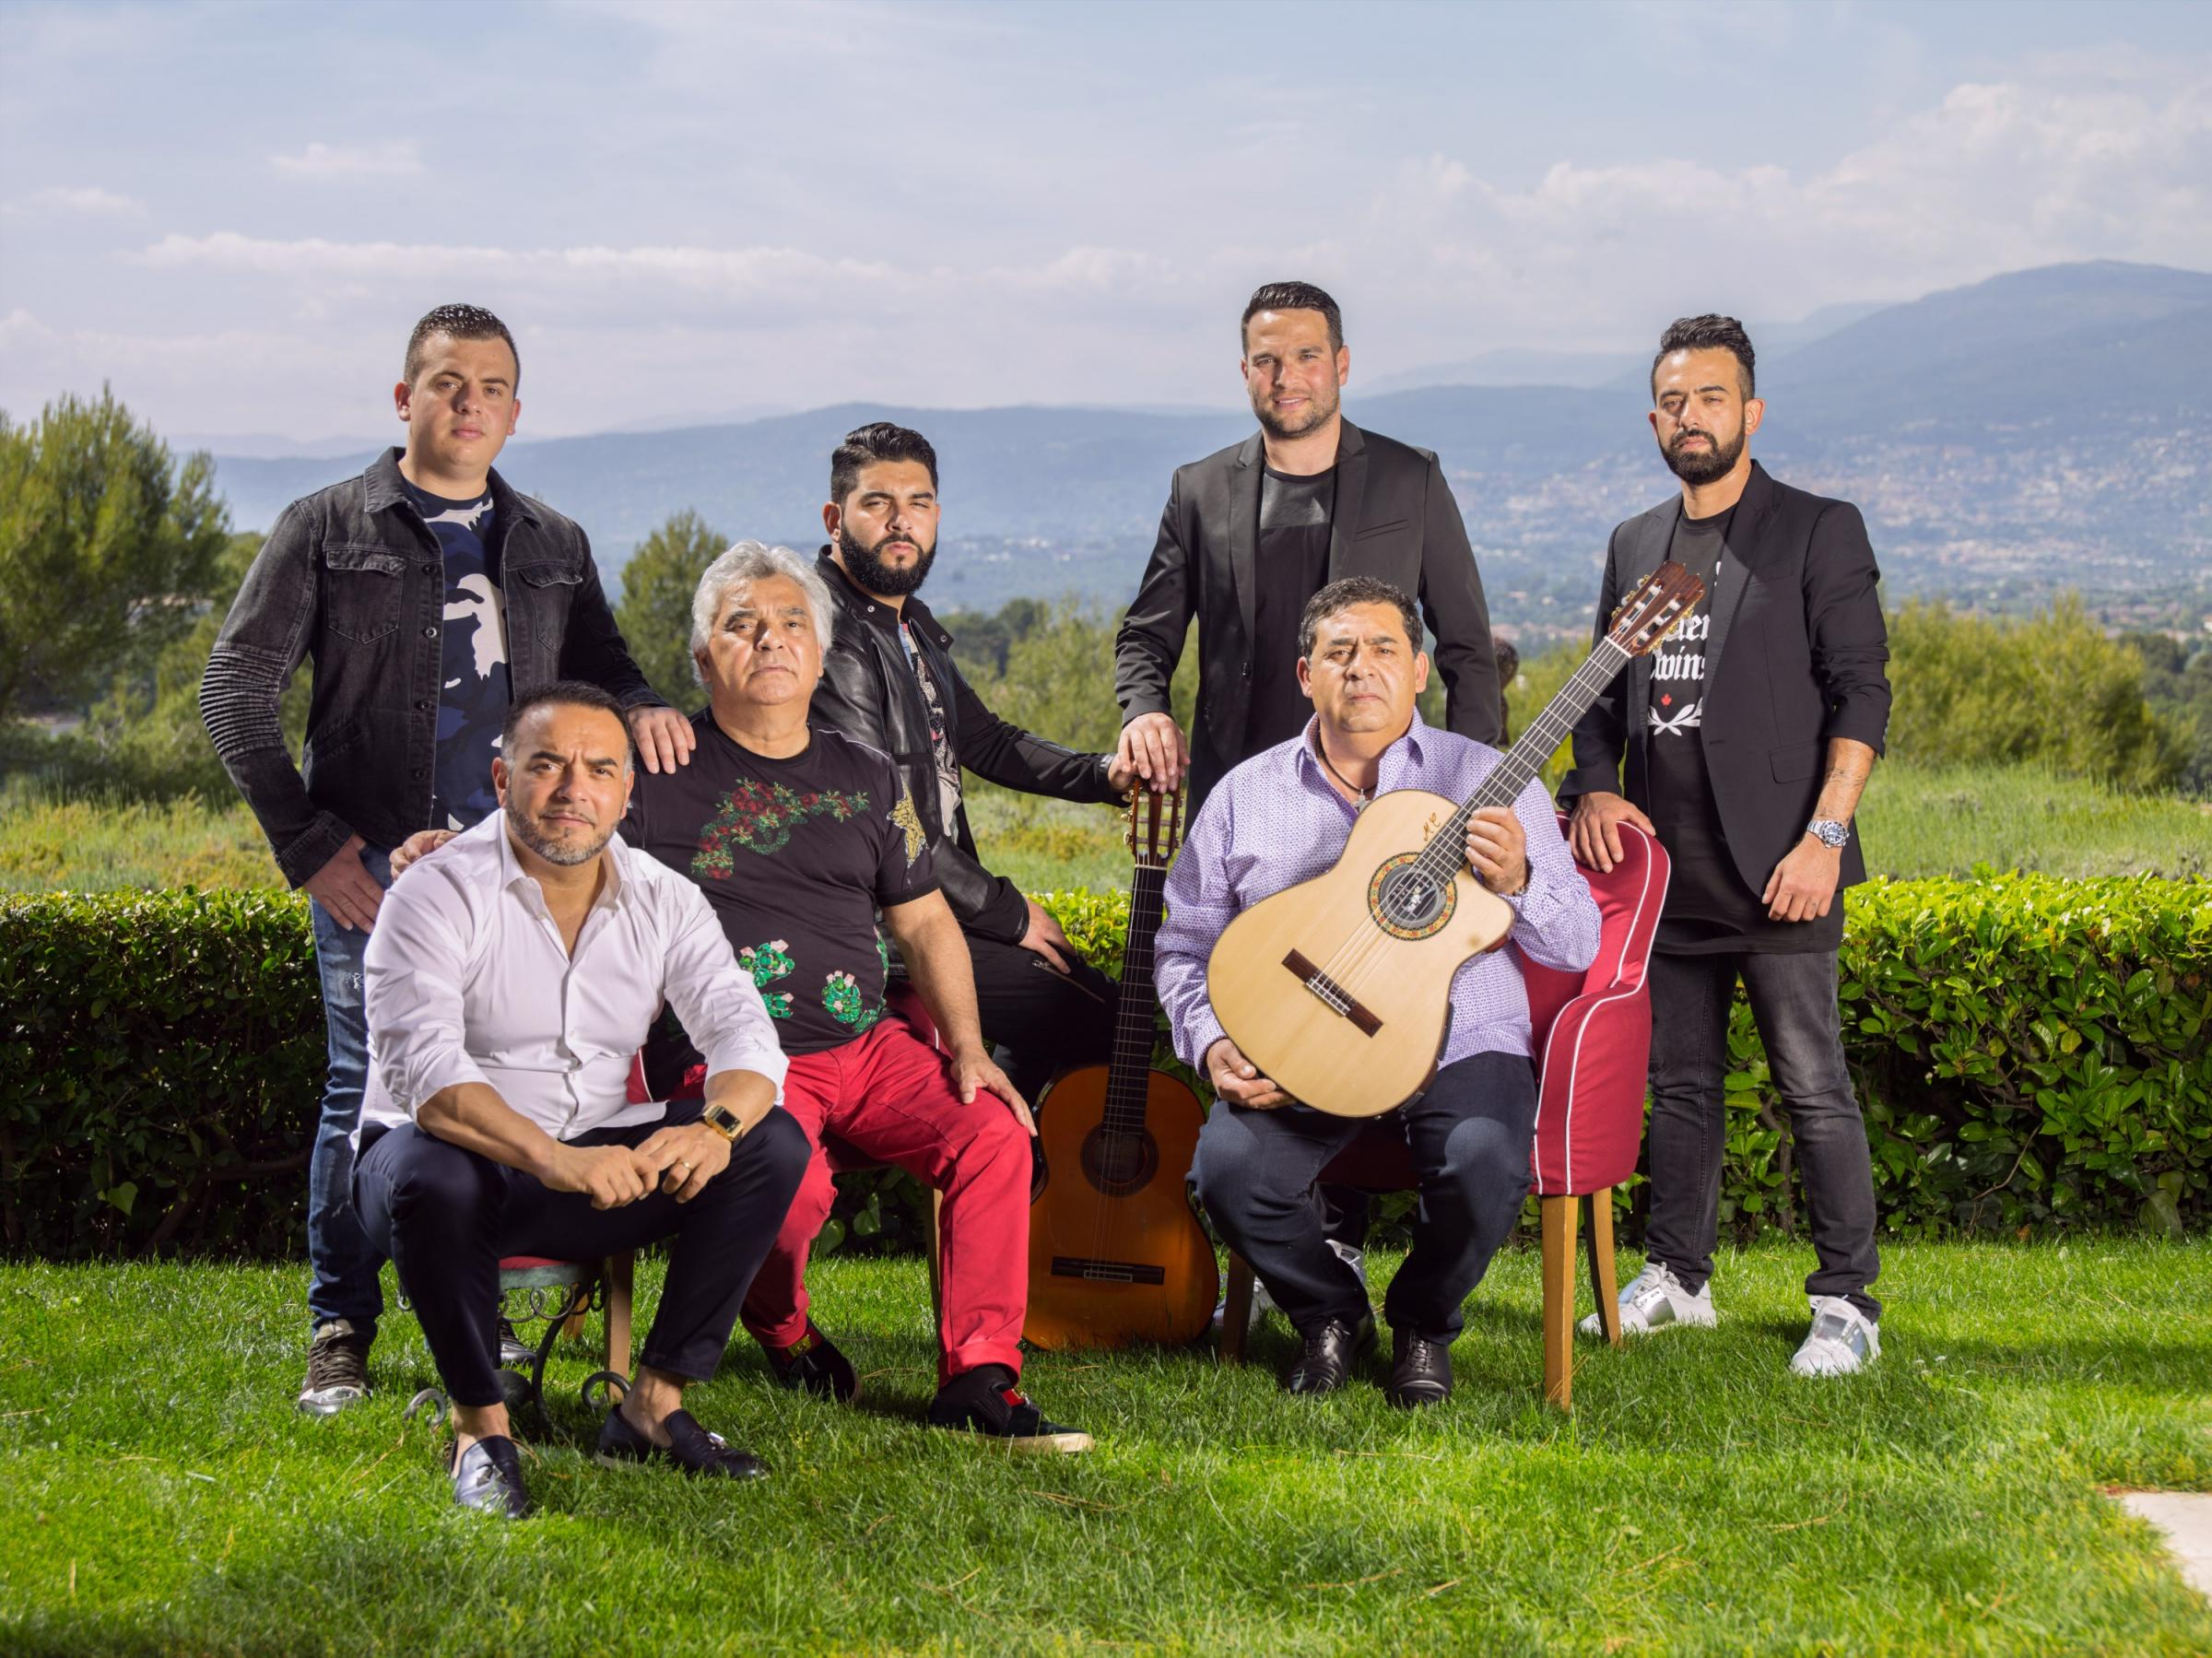 Boundless Summer Concert: The Gipsy Kings